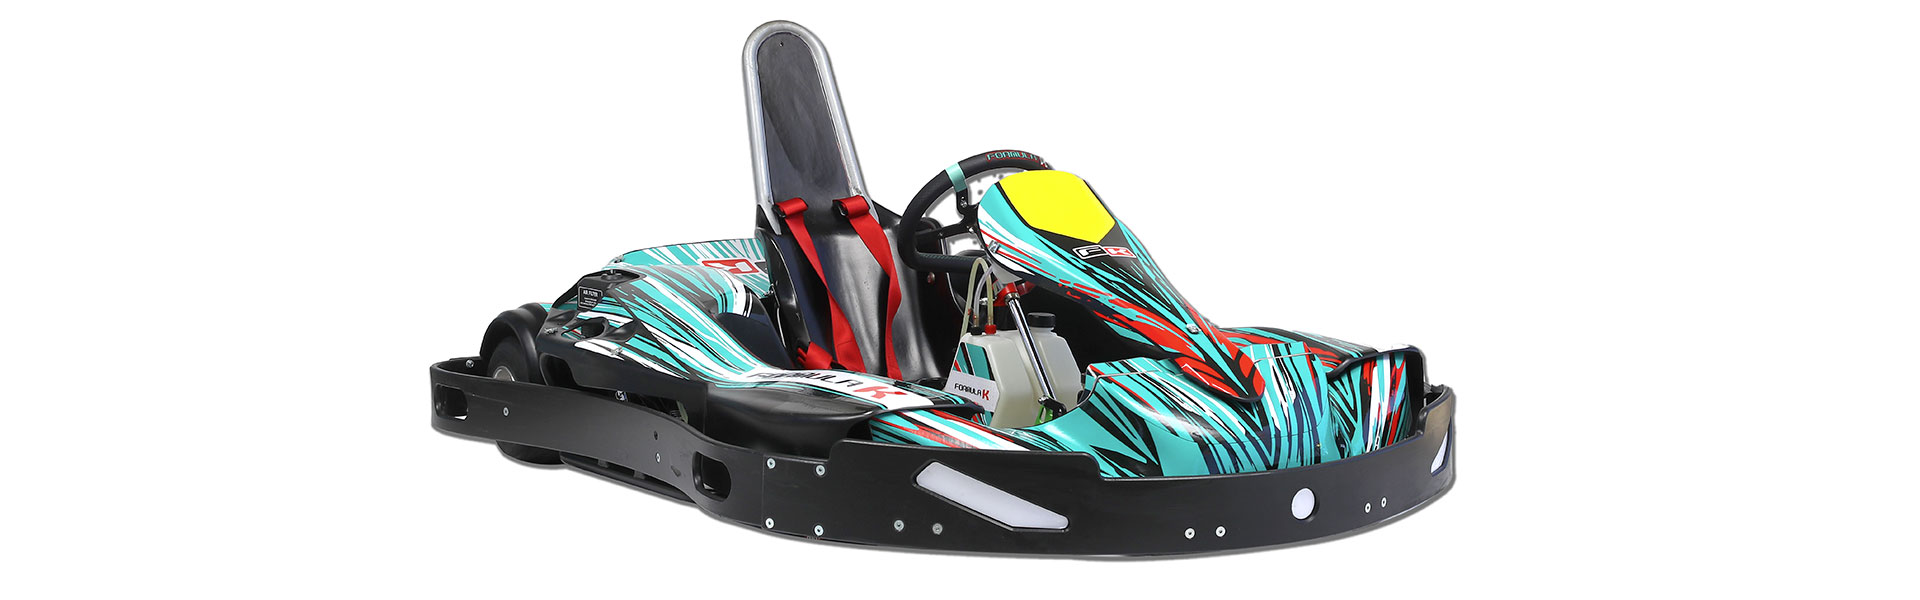 Formula K | All about the new Formula K Race Line Light